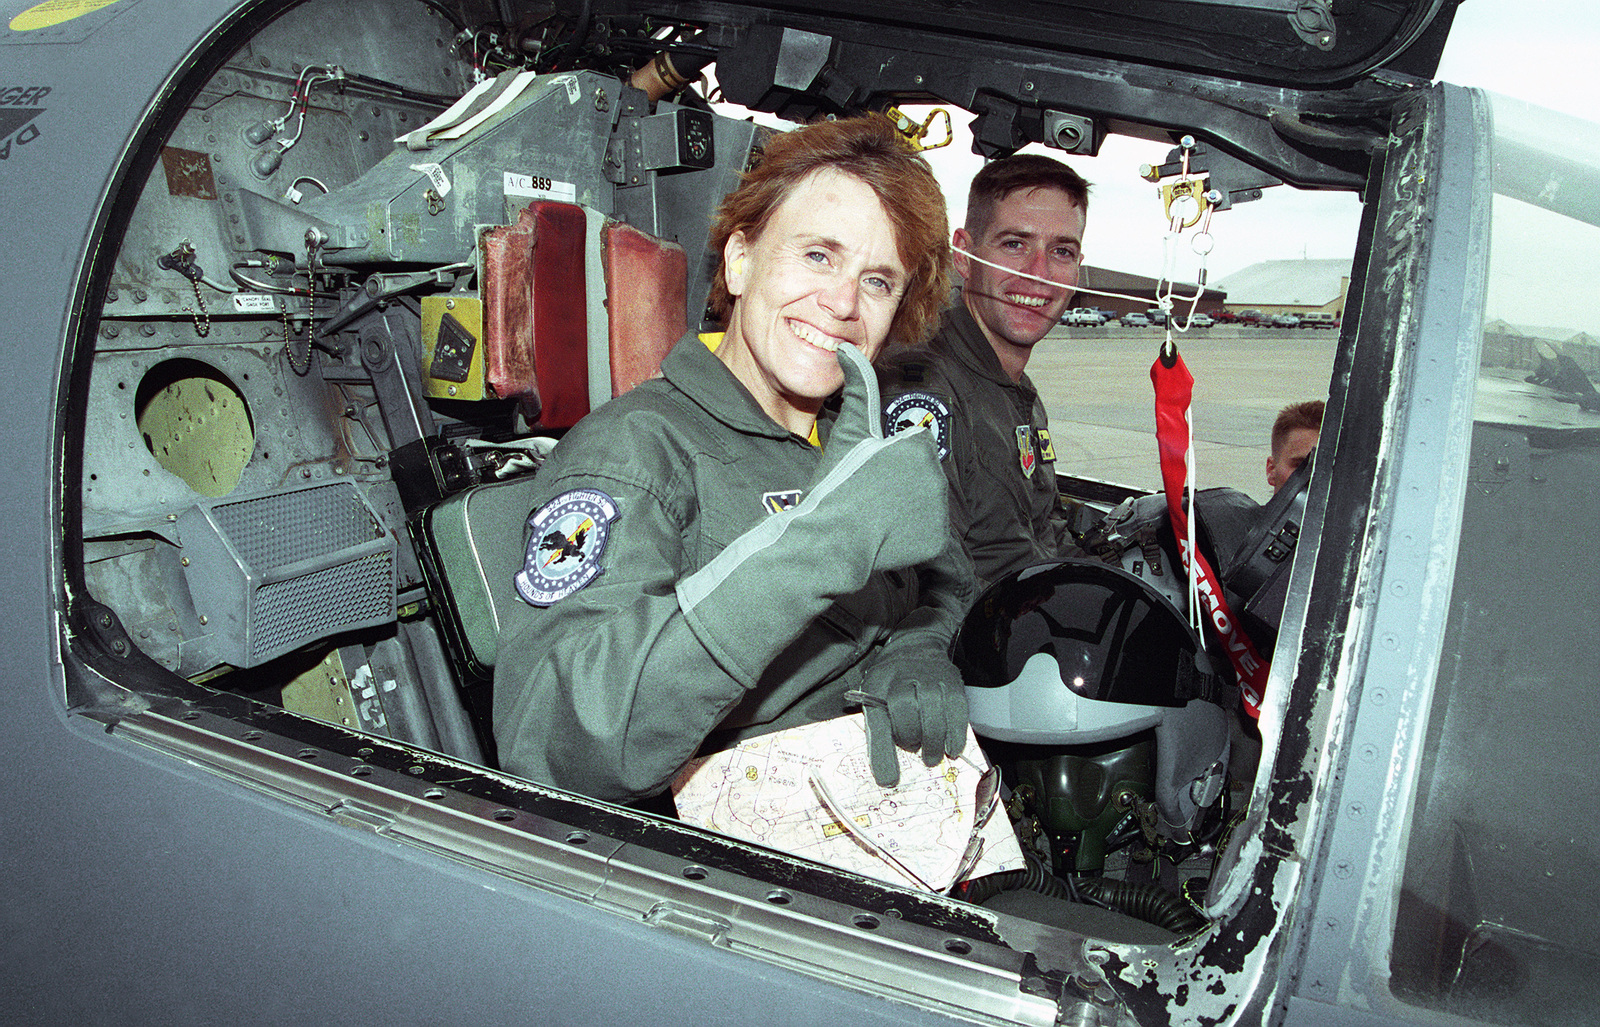 CAPT. Mike Pipan, an F-111 pilot, 27th Fighter Wing, 524 Fighter Squadron, and Dr. Sheila Widnall, Secretary of the Air Force, pose in the cockpit for a photo after flying a sortie